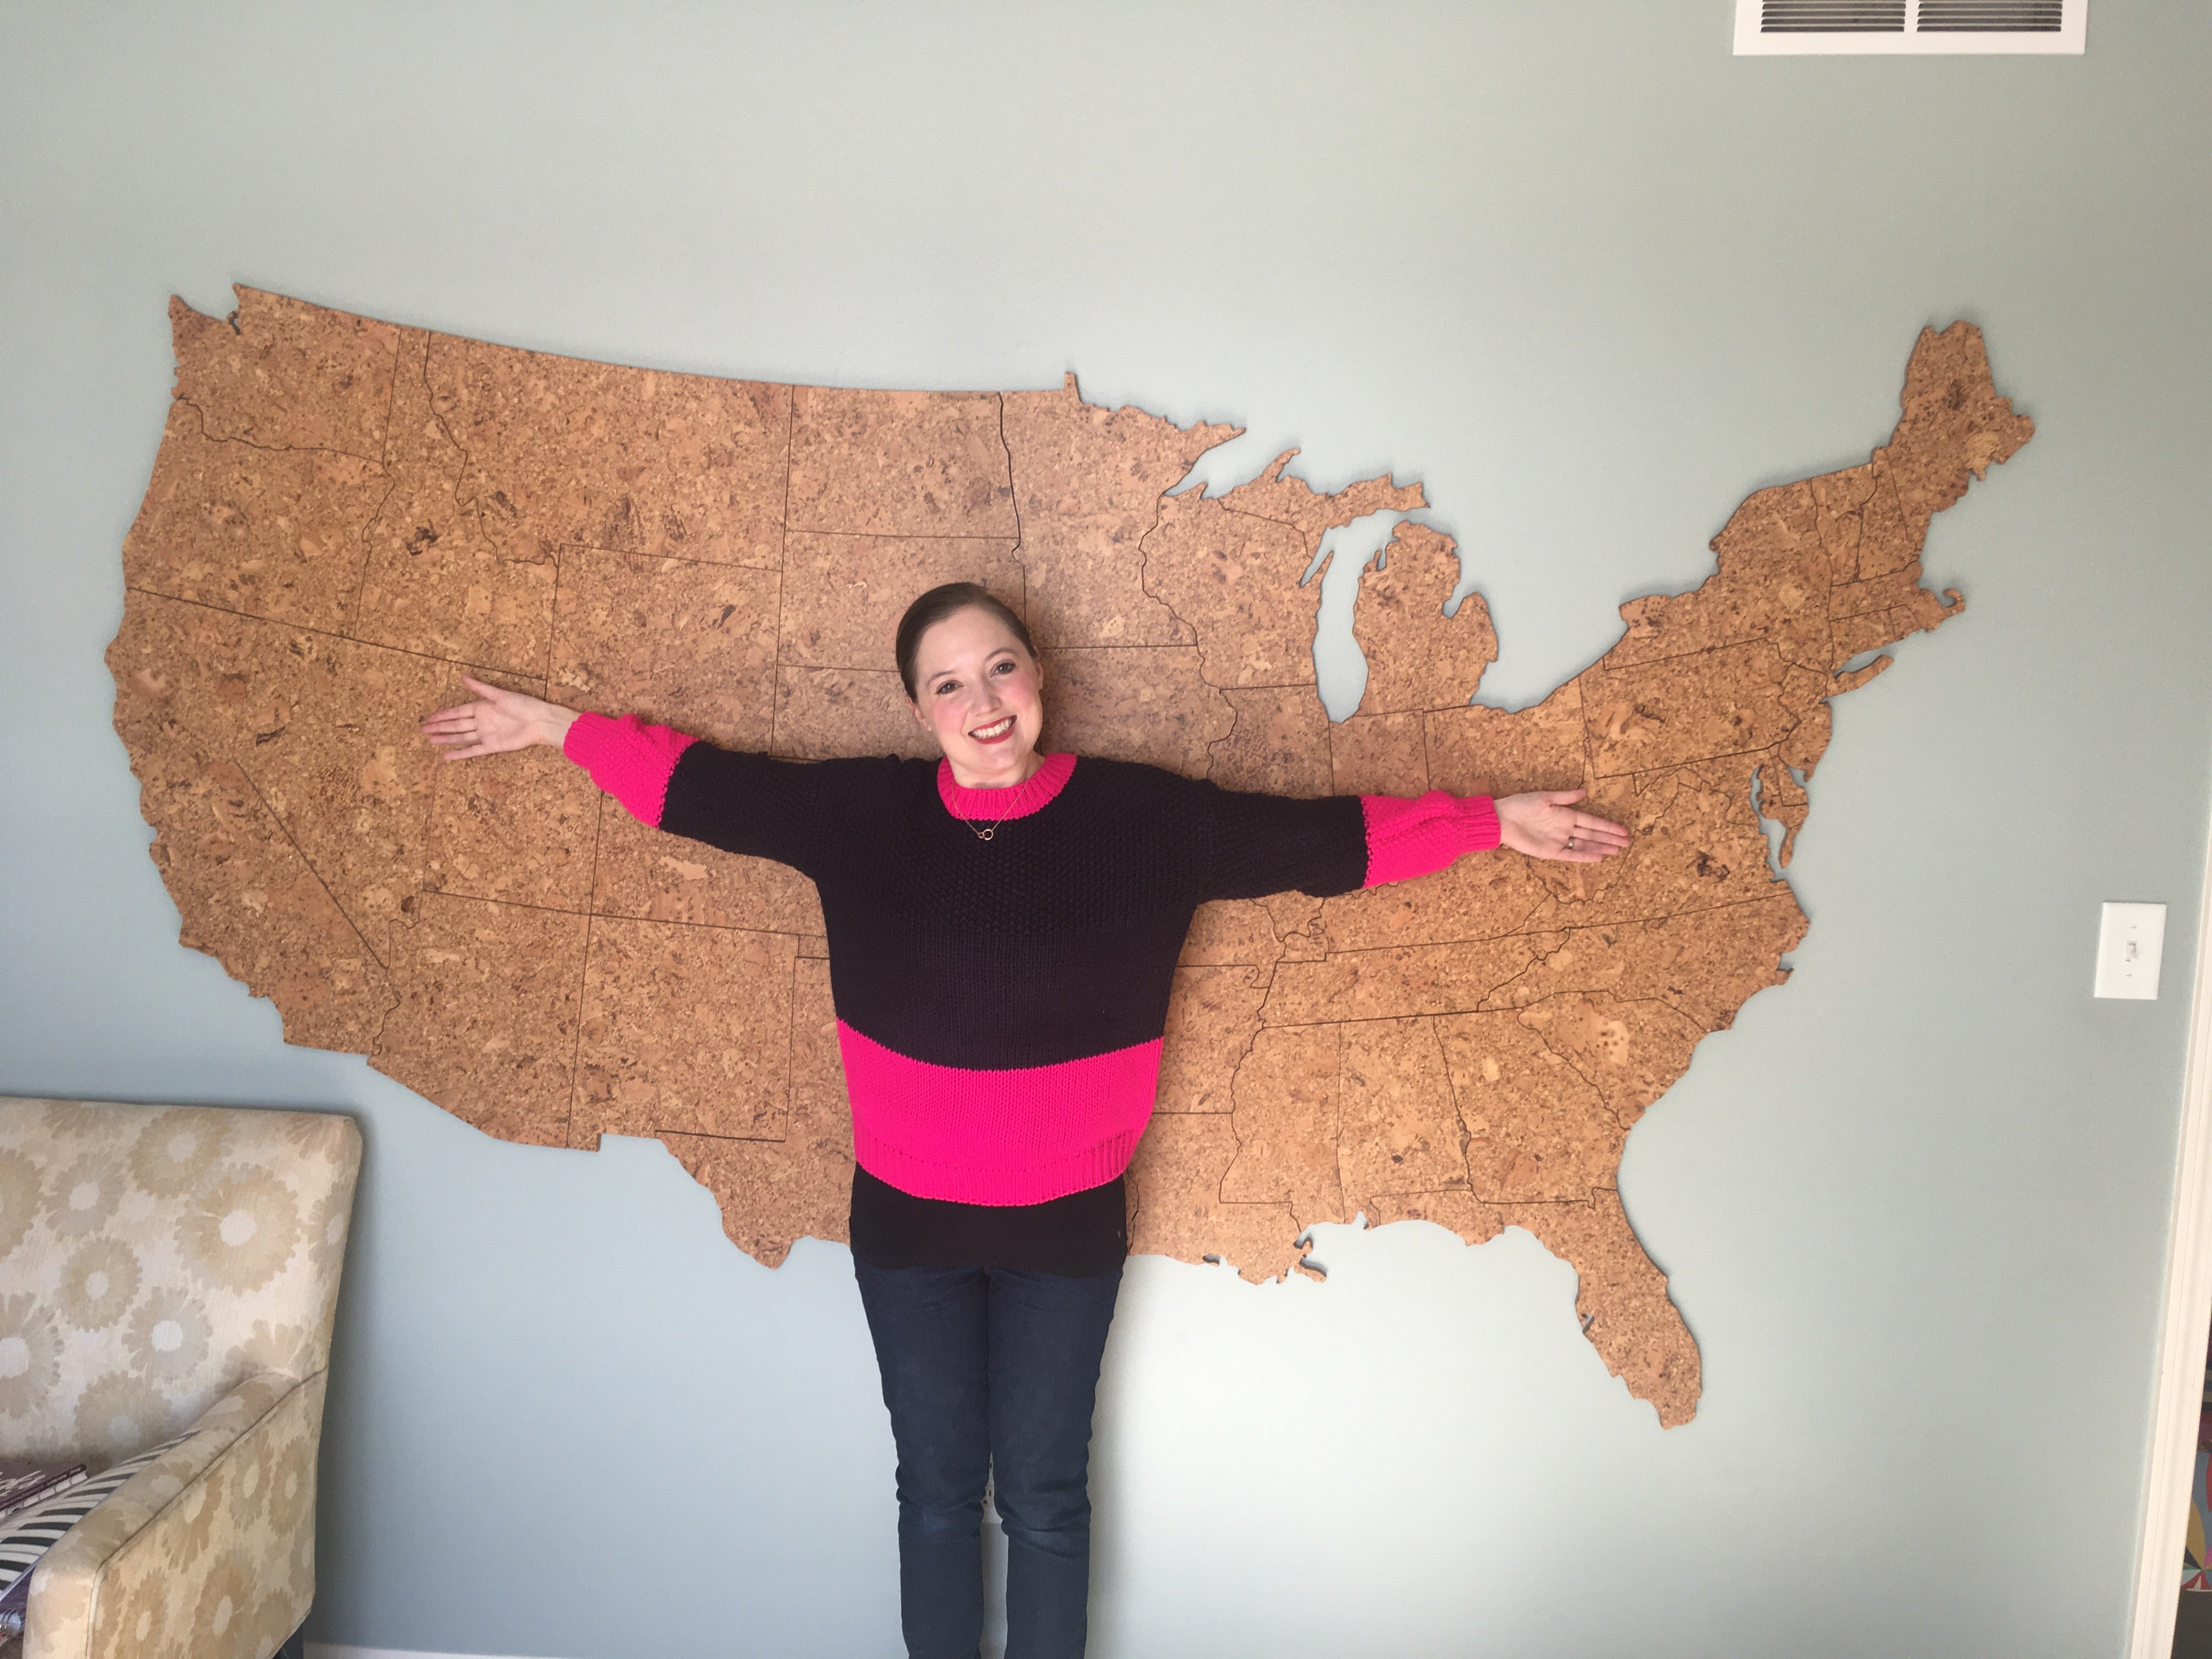 Giant Cork Wall Map of the United States - 8 Foot Wide, Wall Decor - GEO 101 DESIGN